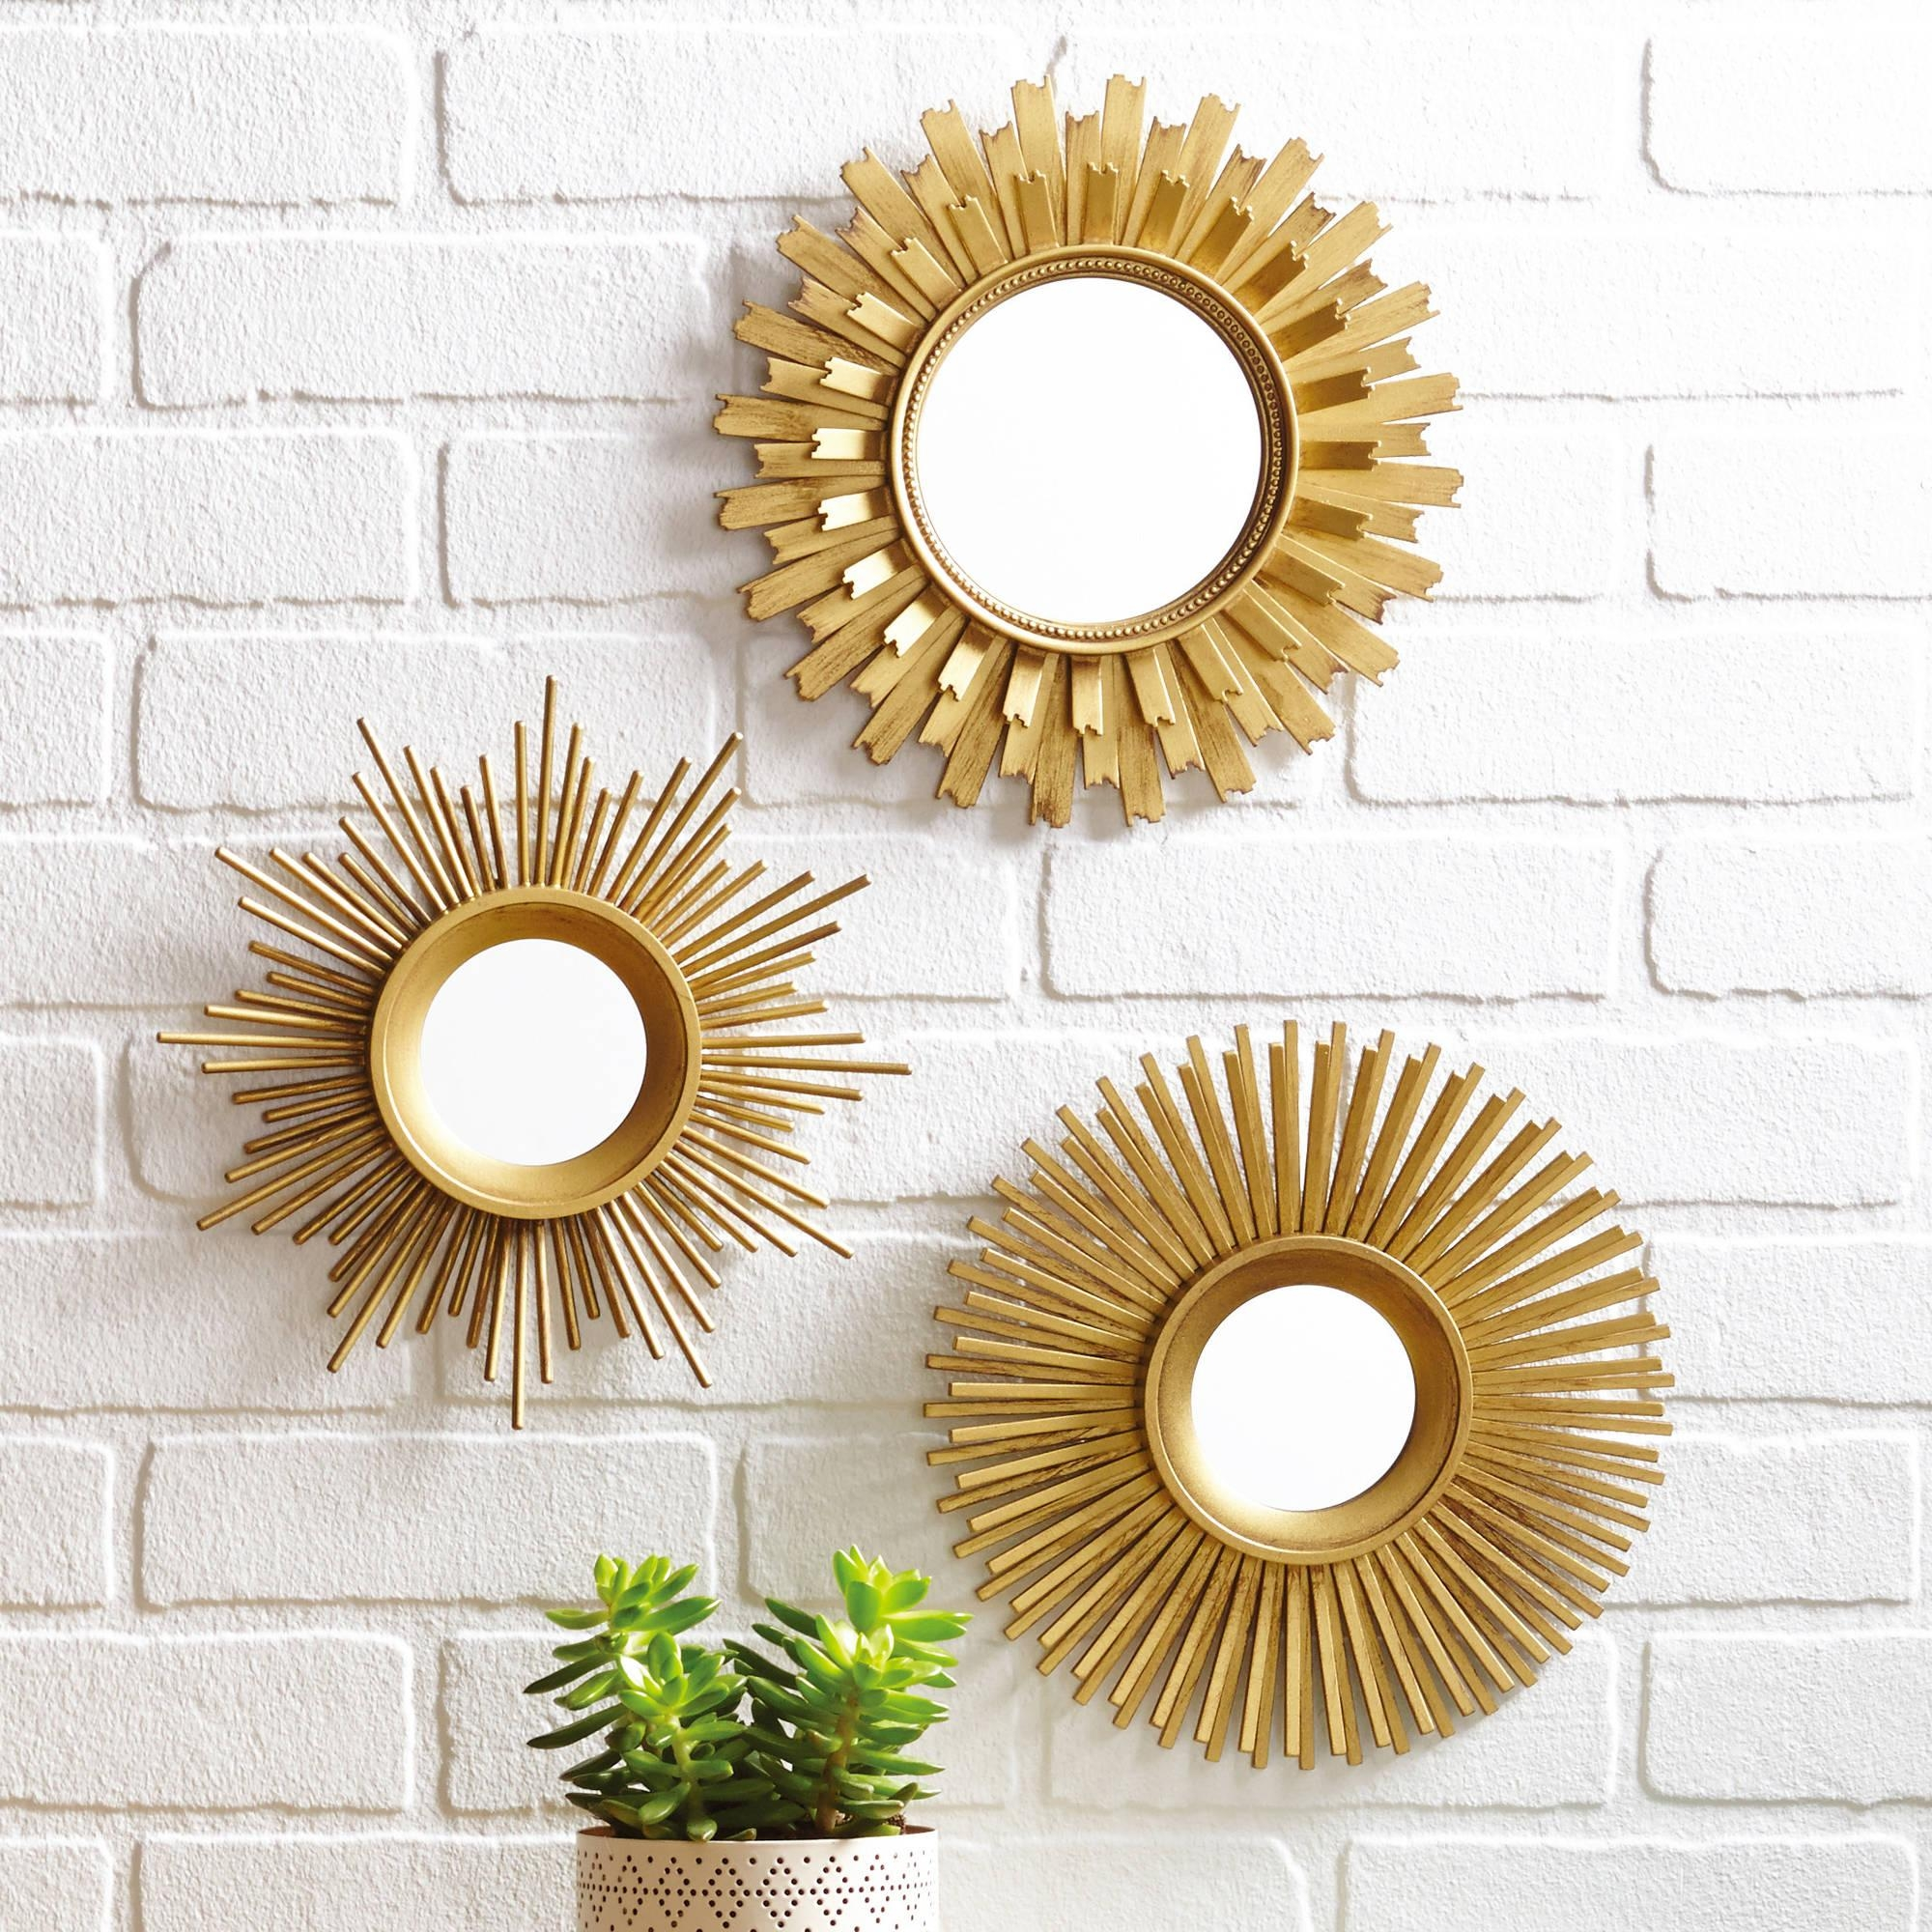 Small round mirrors wall art image collections home wall 20 ideas of small round mirrors wall art wall art ideas decor 84 home decoration with amipublicfo Gallery